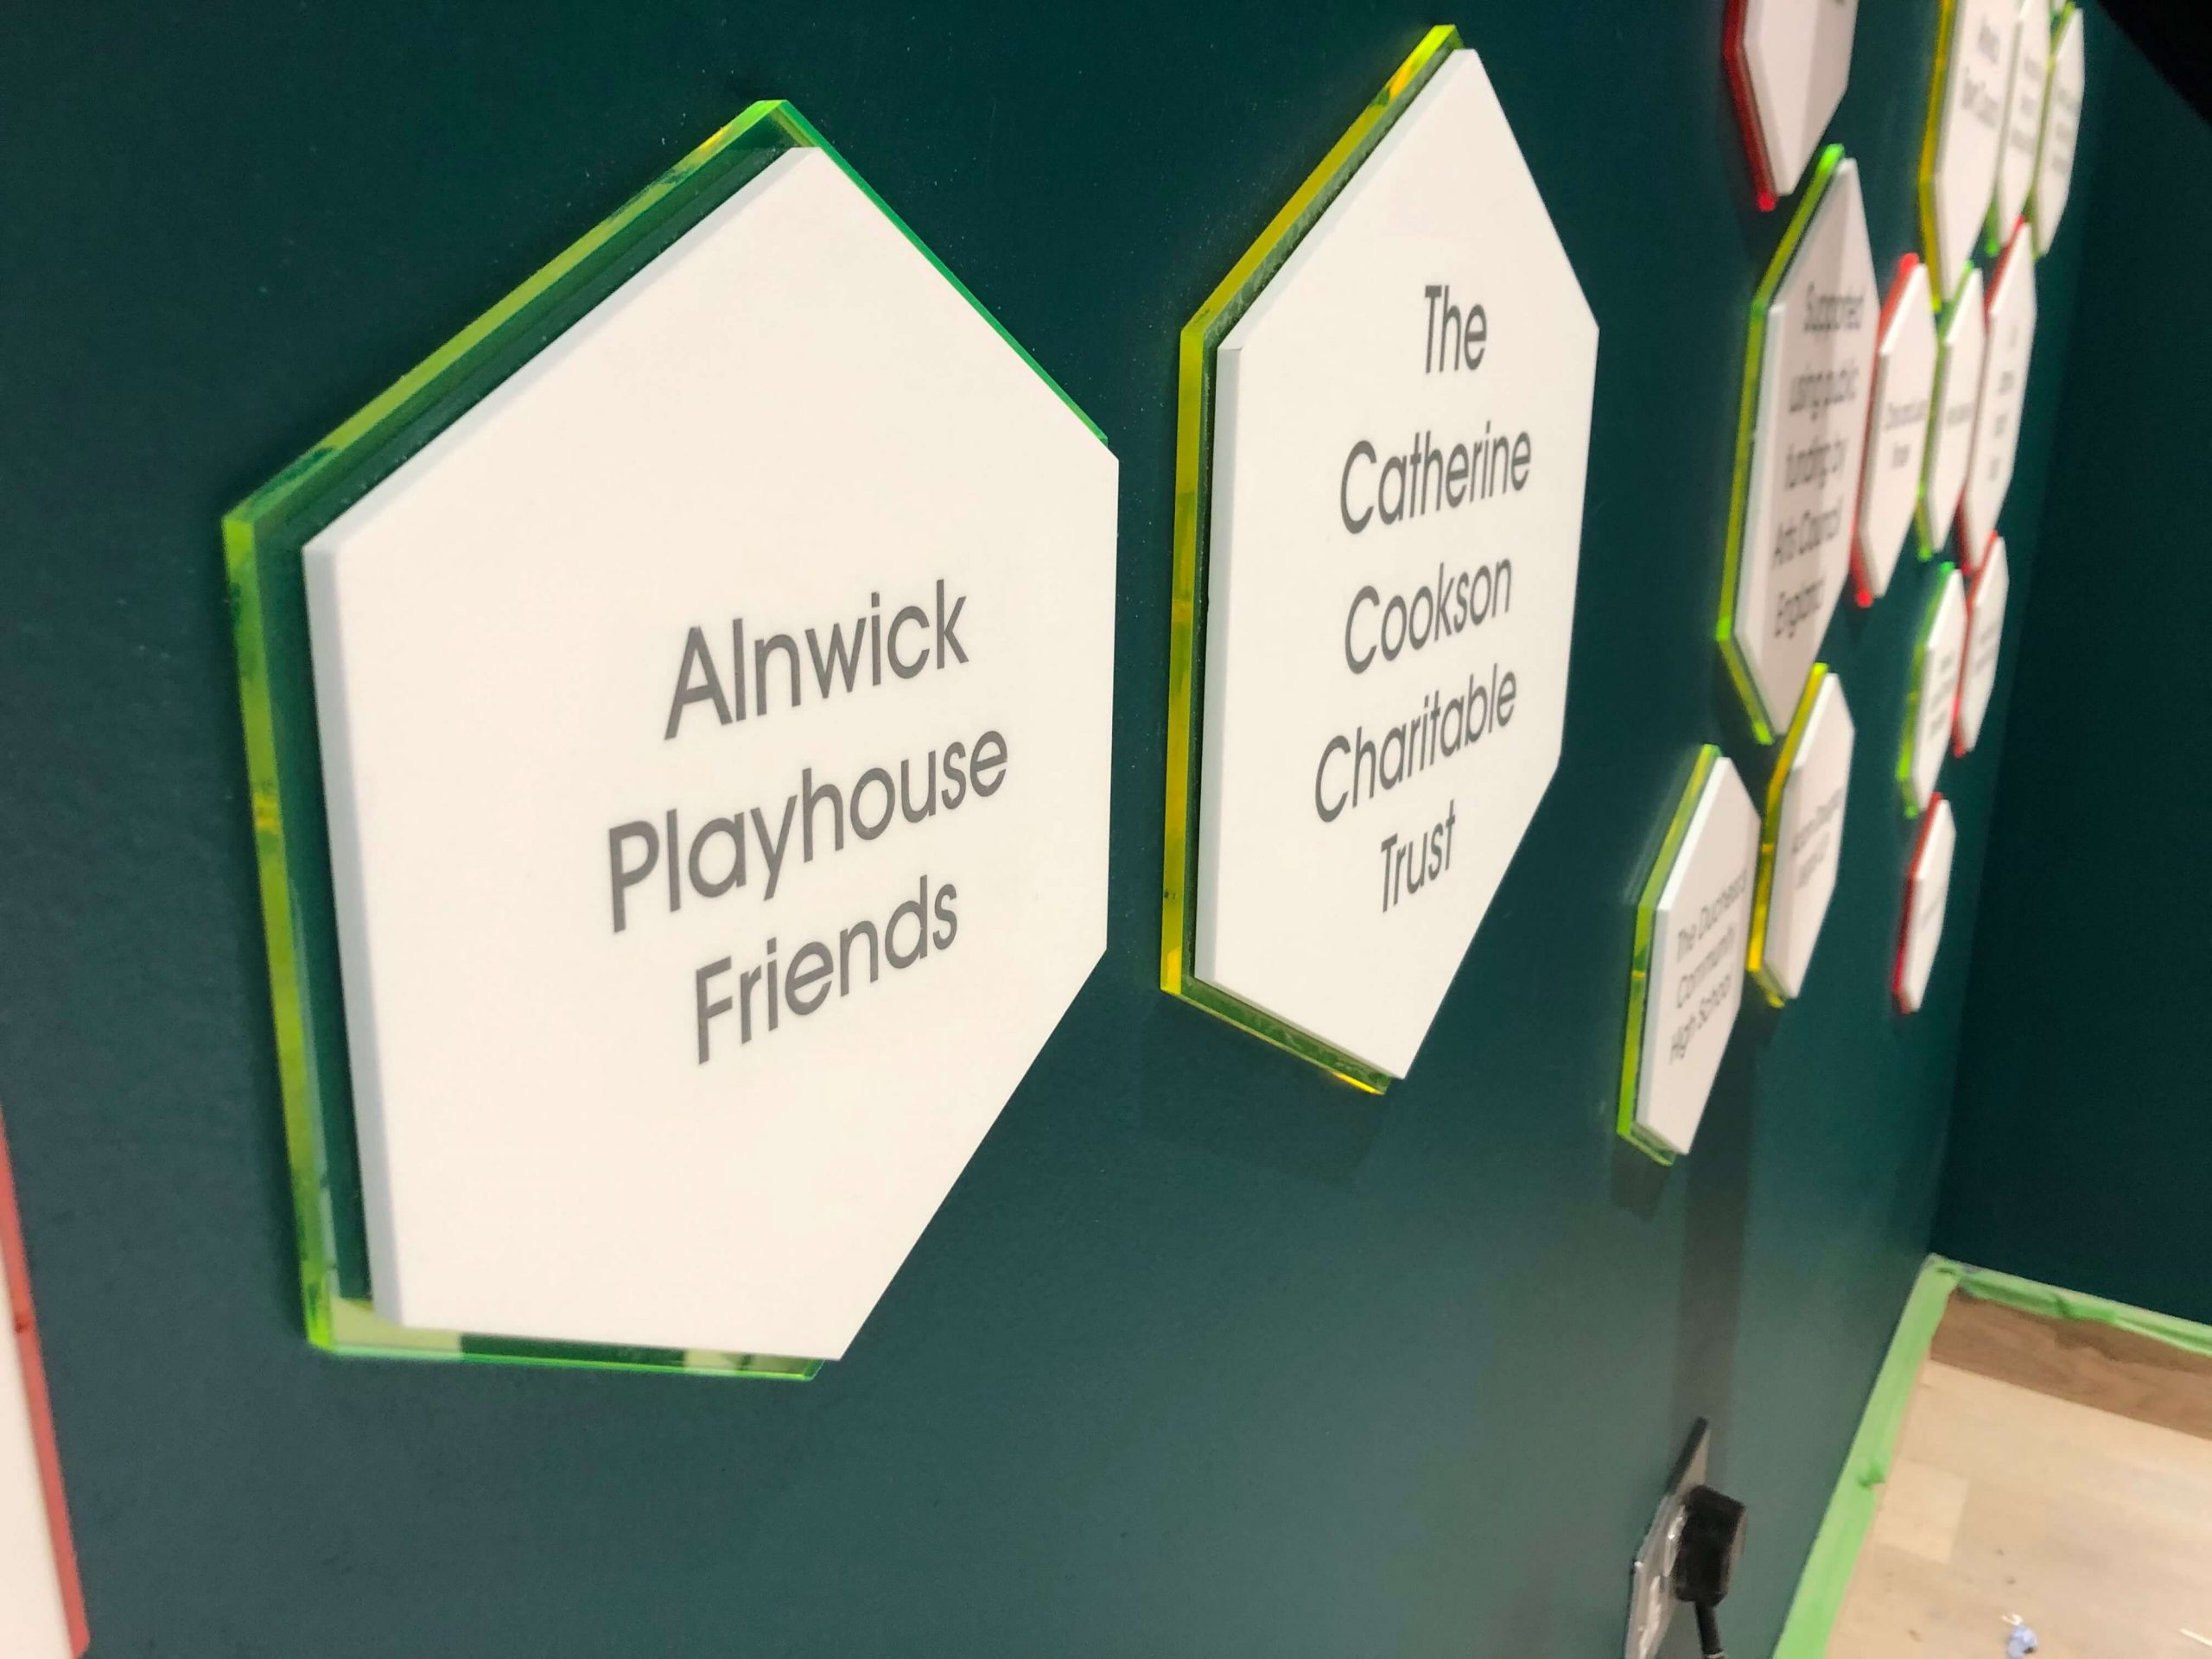 Details of panel signage at Alnwick Playhouse